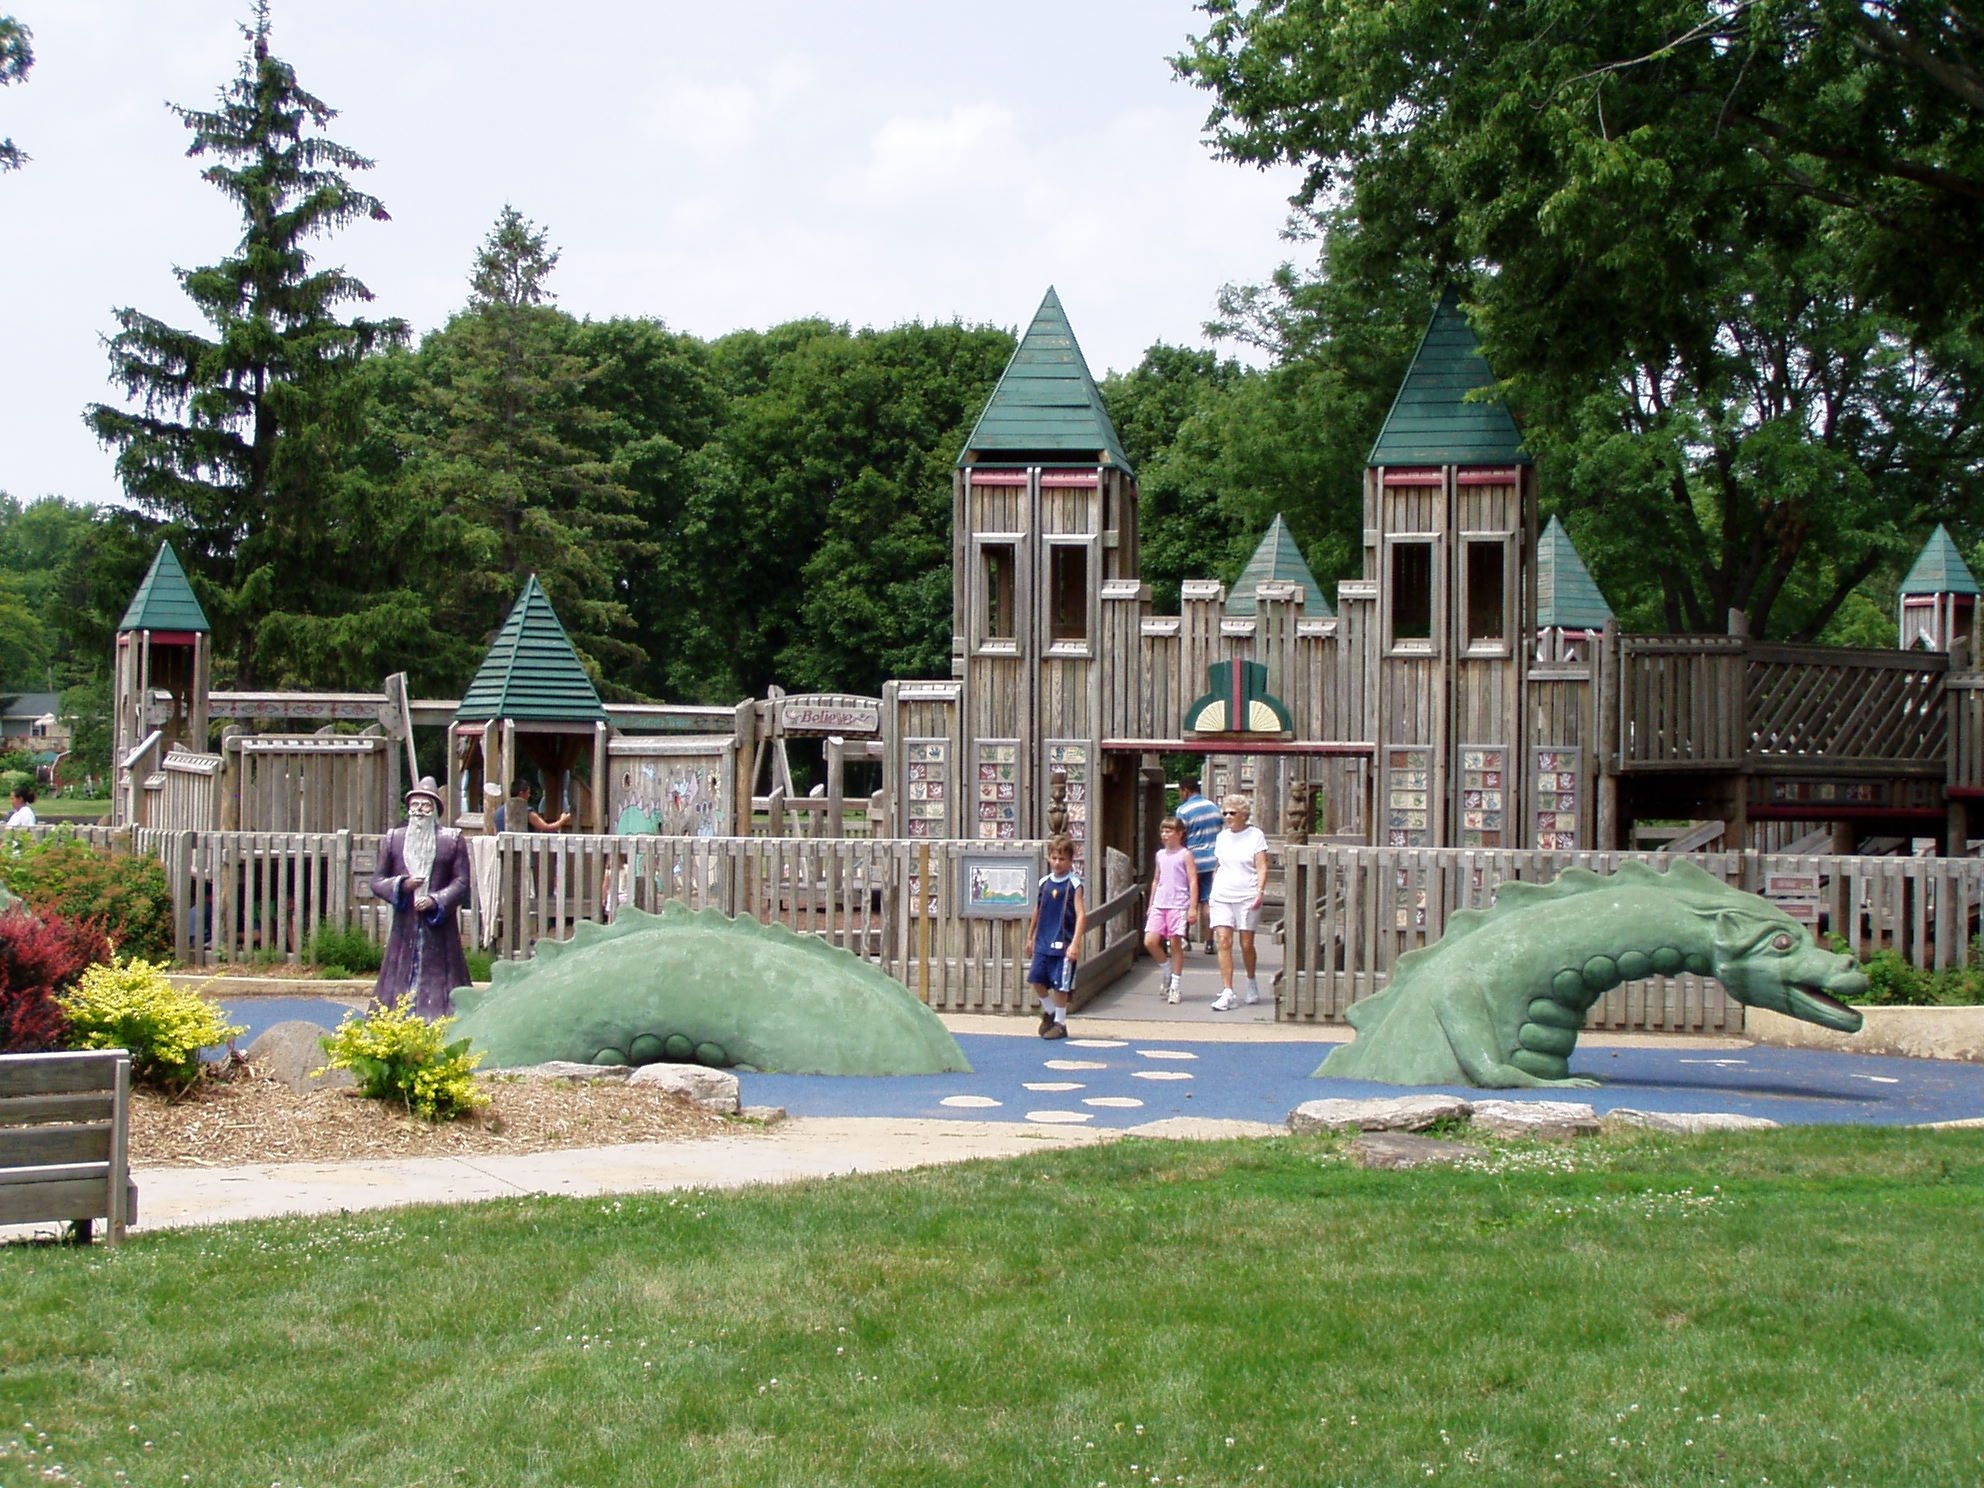 Dream Park | Things to Do in Madison Area | Pinterest | Park, City ...